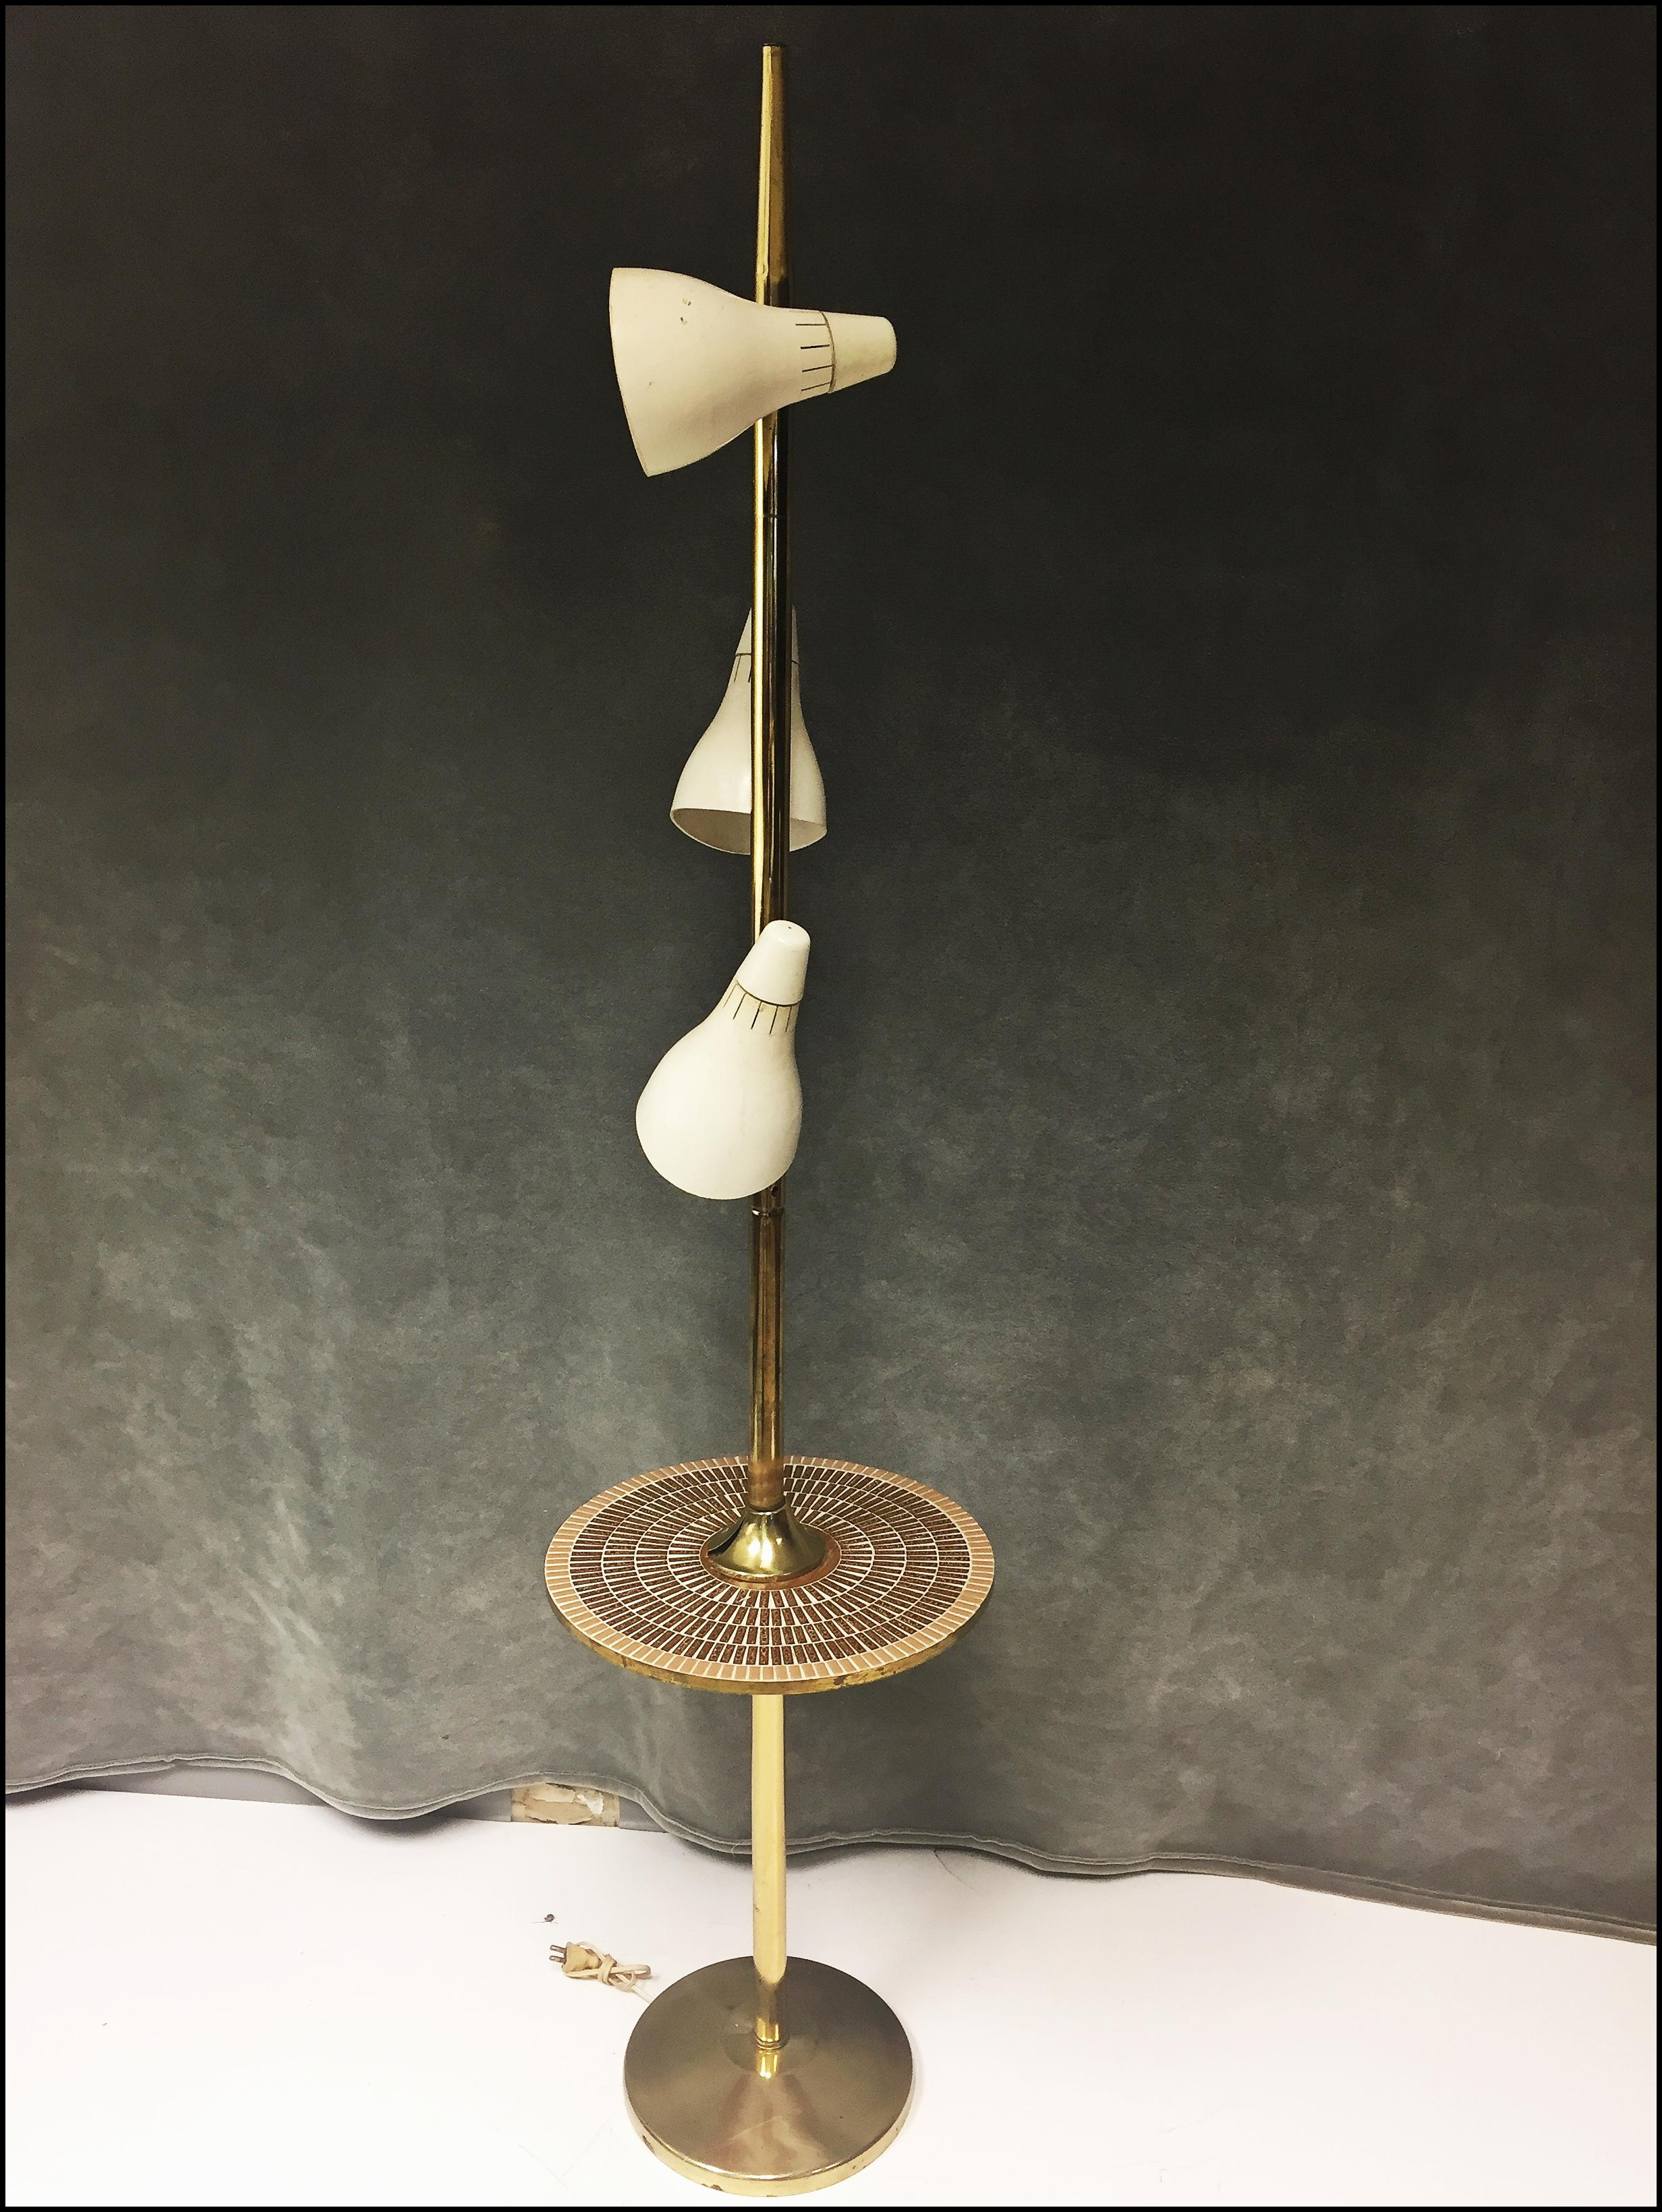 Mid Century Modern Pole Lamp with Tile Top Table